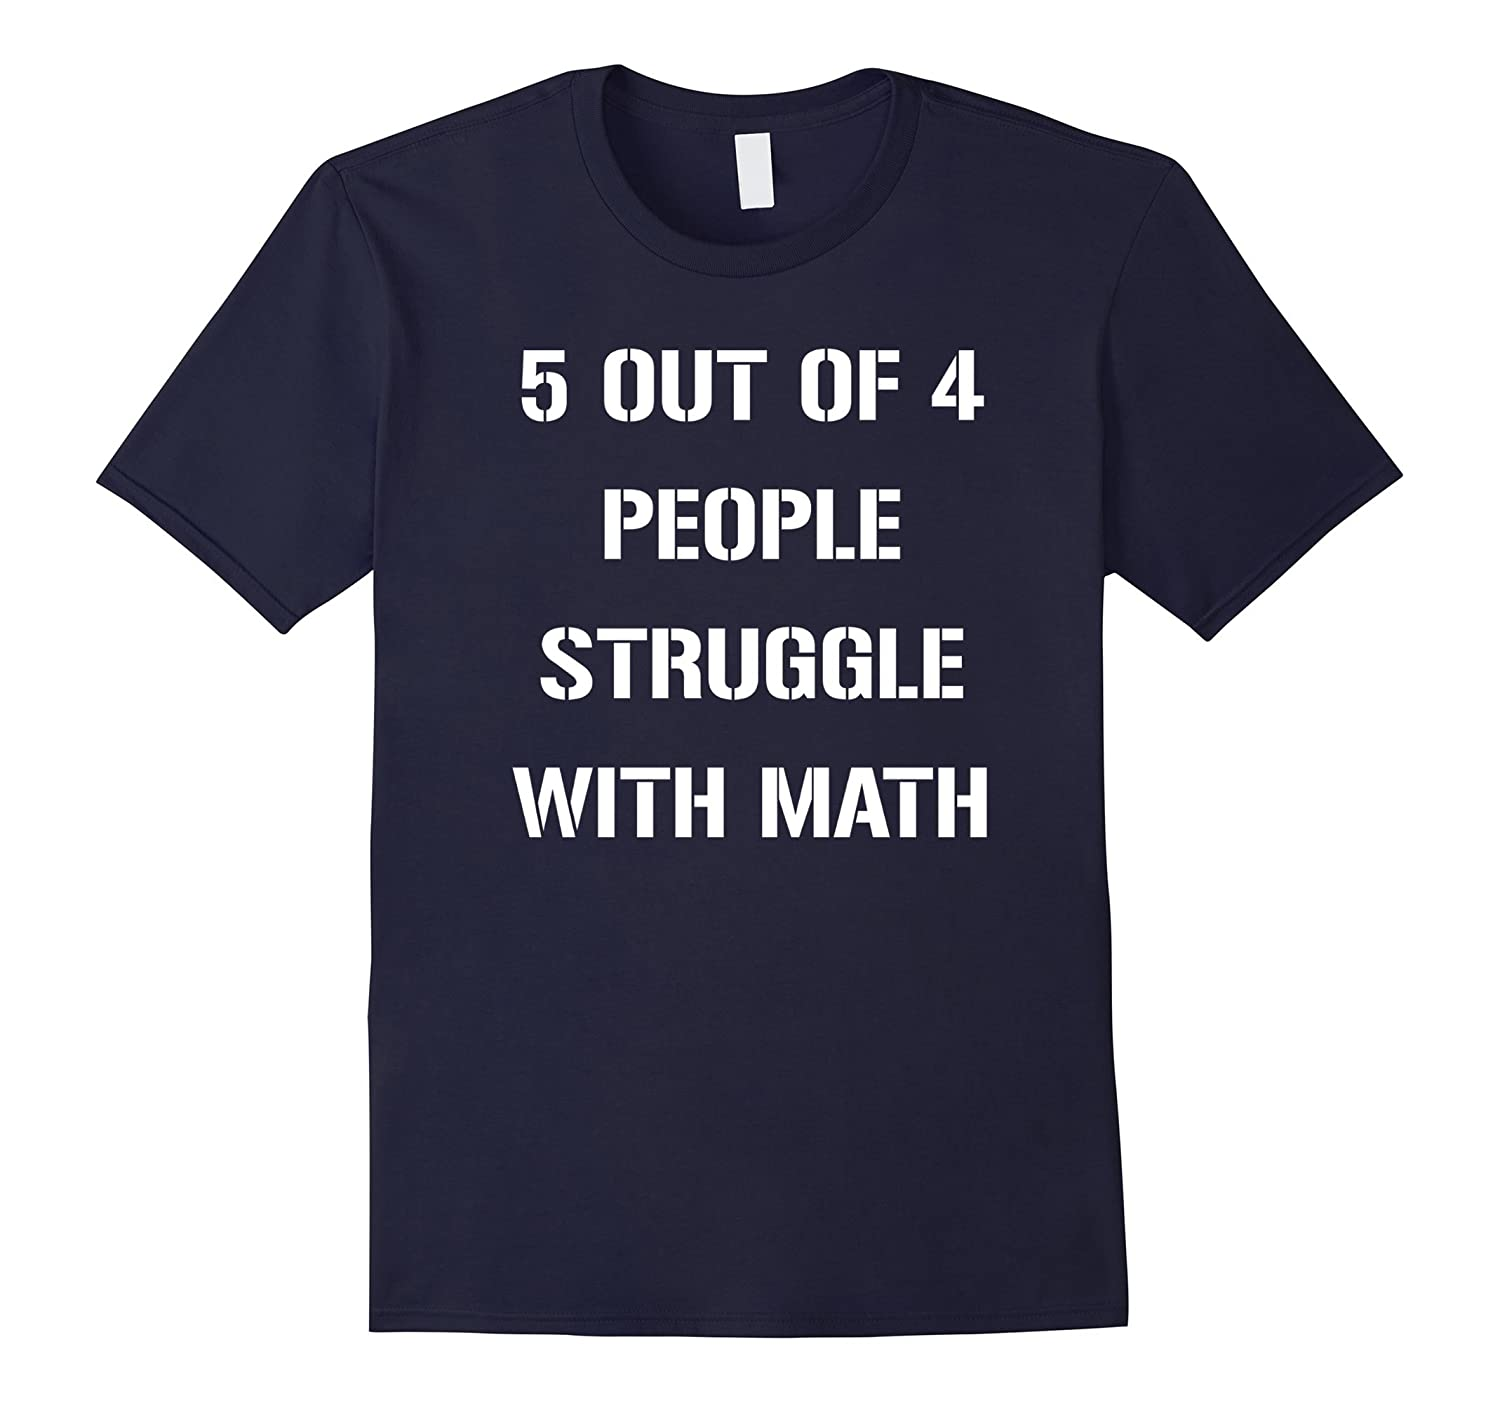 5 OUT OF 4 PEOPLE STRUGGLE WITH MATH FUNNY TSHIRT-T-Shirt